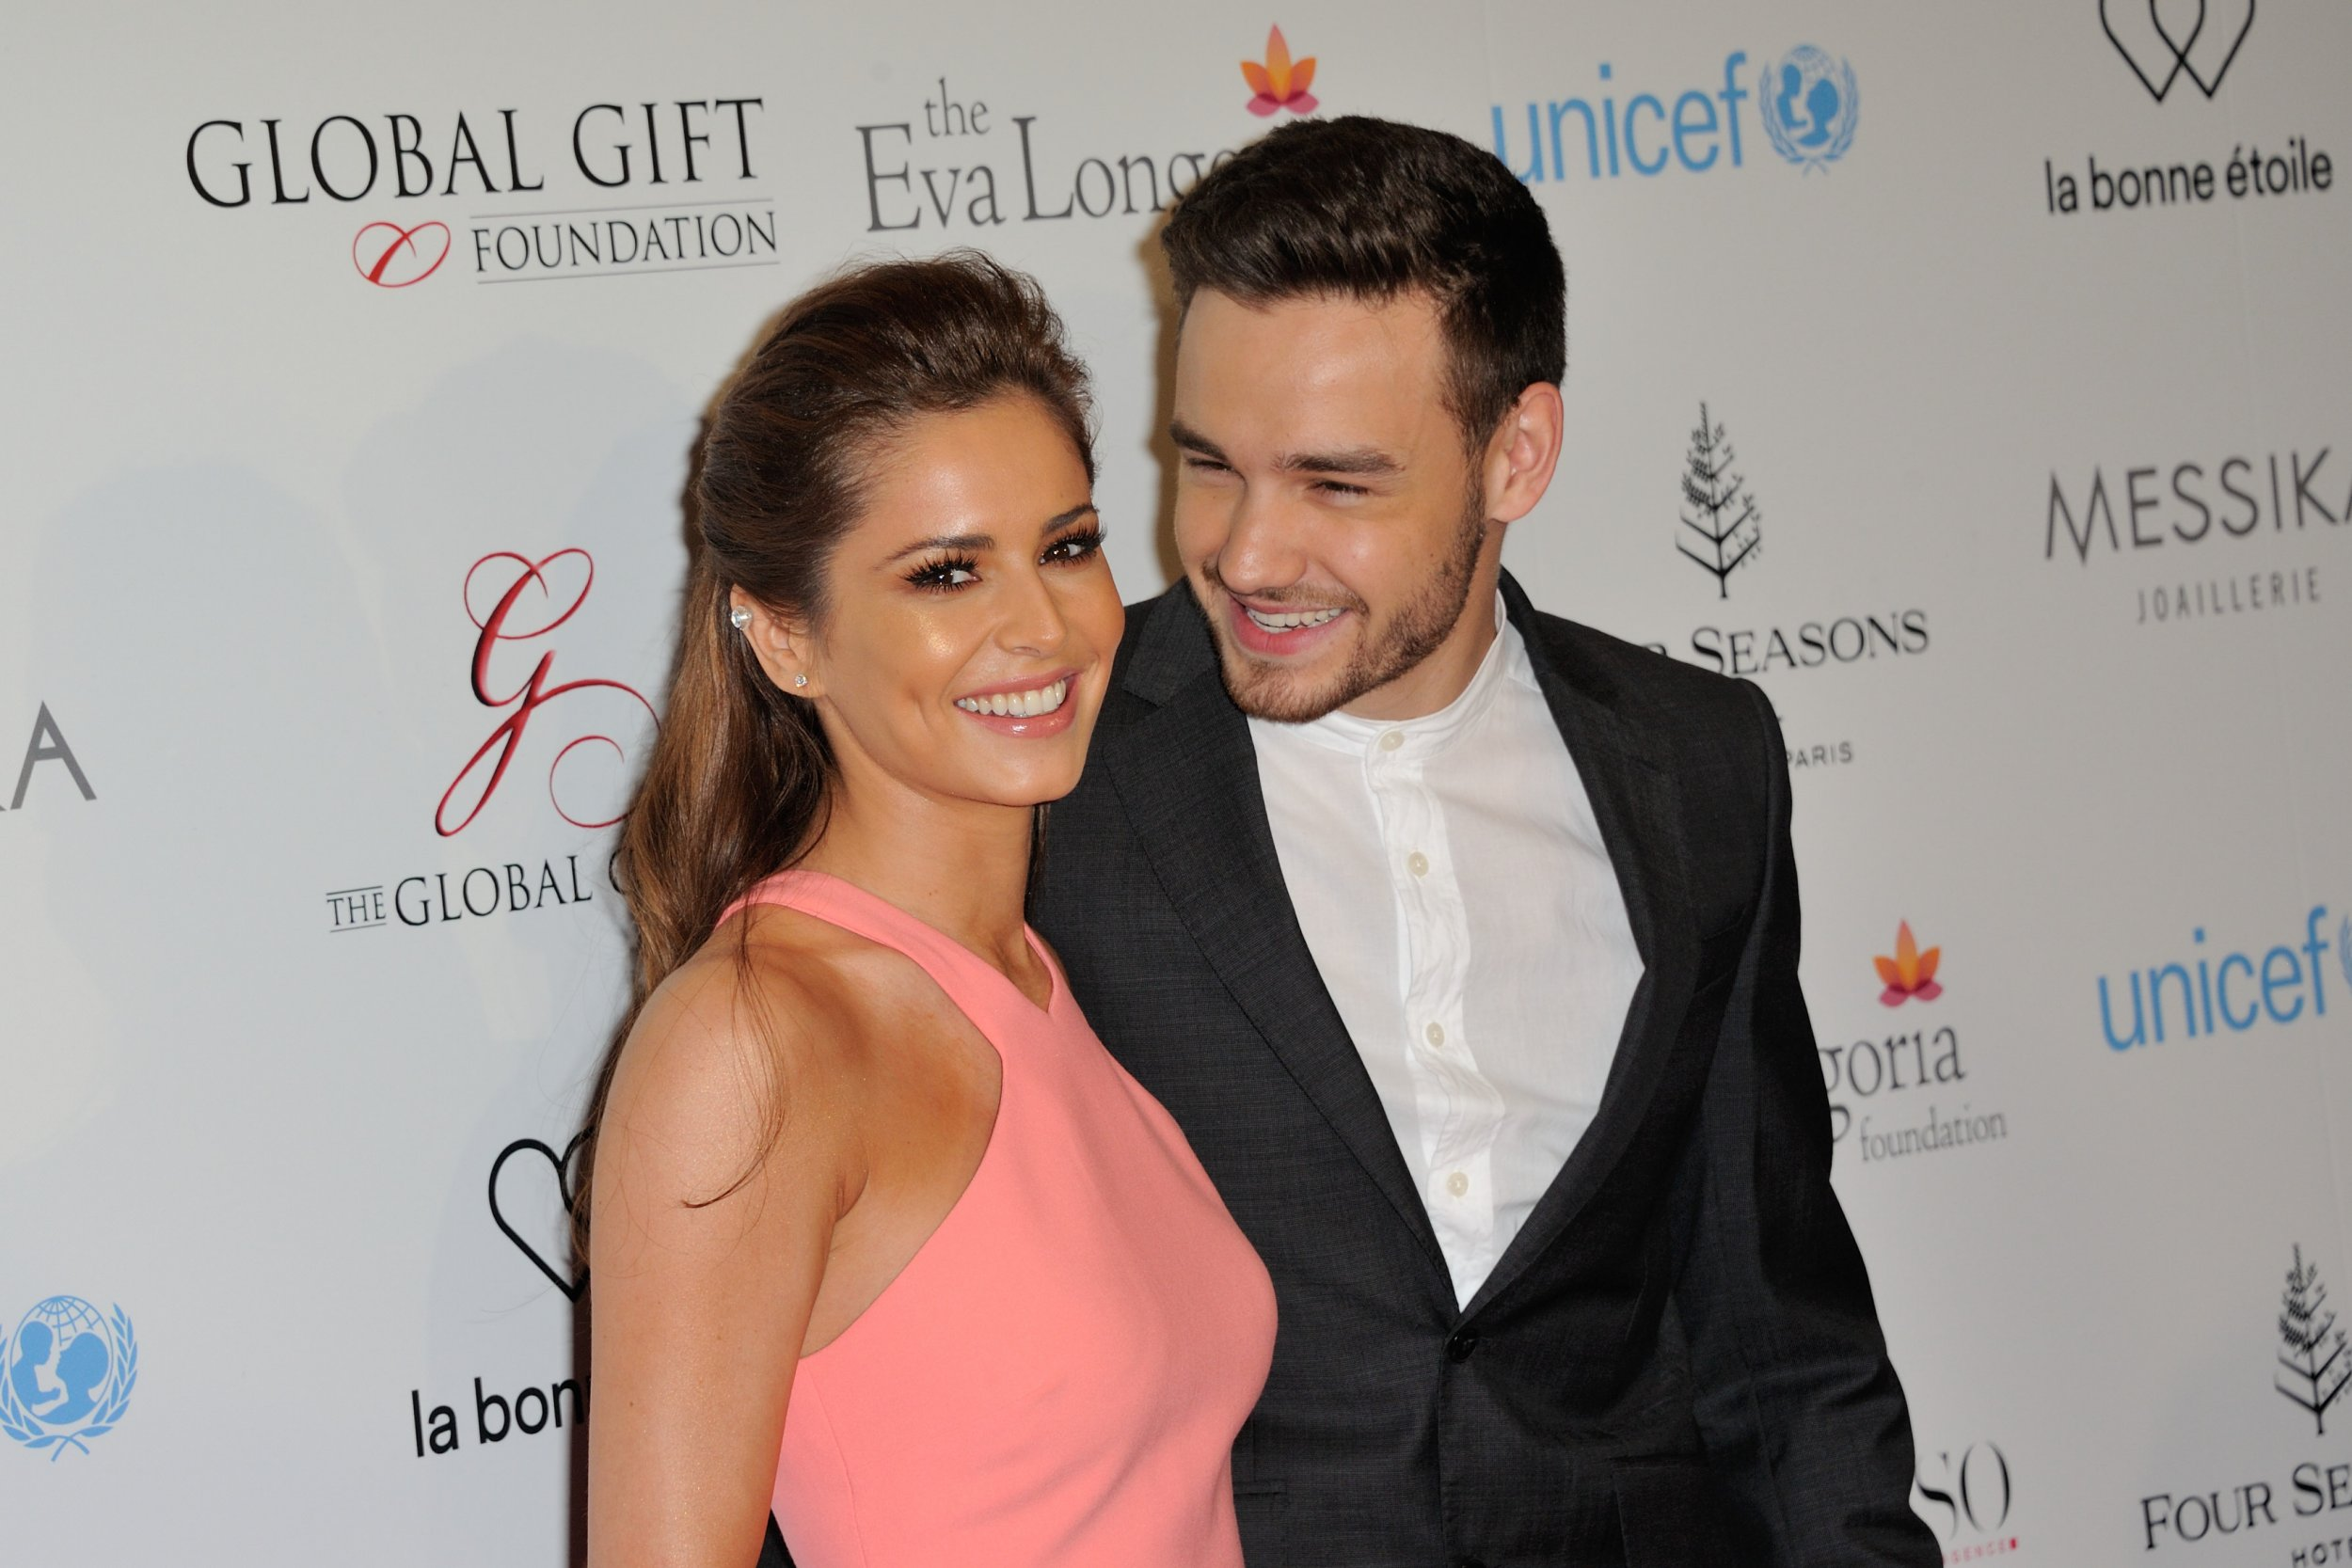 Cheryl Fernandez-Versini, Liam Payne attending the Global Gift Gala photocall at Four Seasons Hotel George V in Paris, France, on May 9, 2016. Photo by Alban Wyters/ABACAPRESS.COM